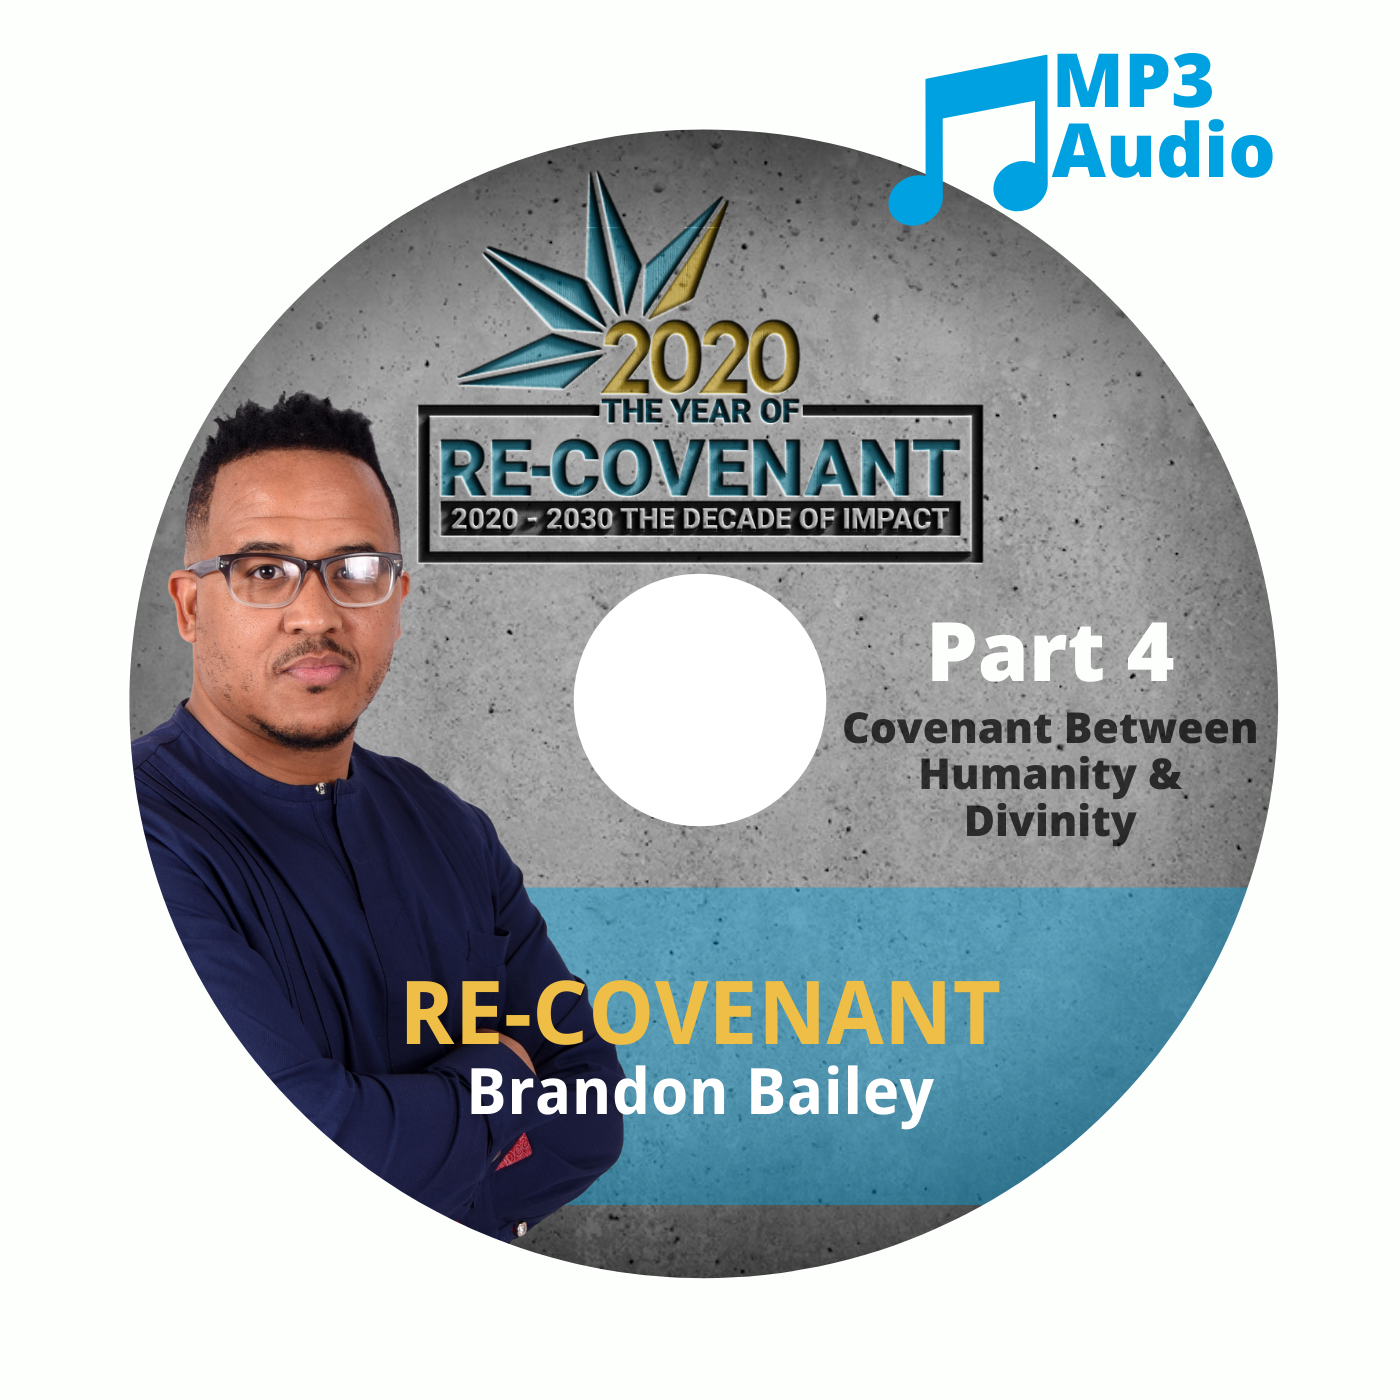 Re-Covenant Part 4: Covenant Between Humanity and Divinity